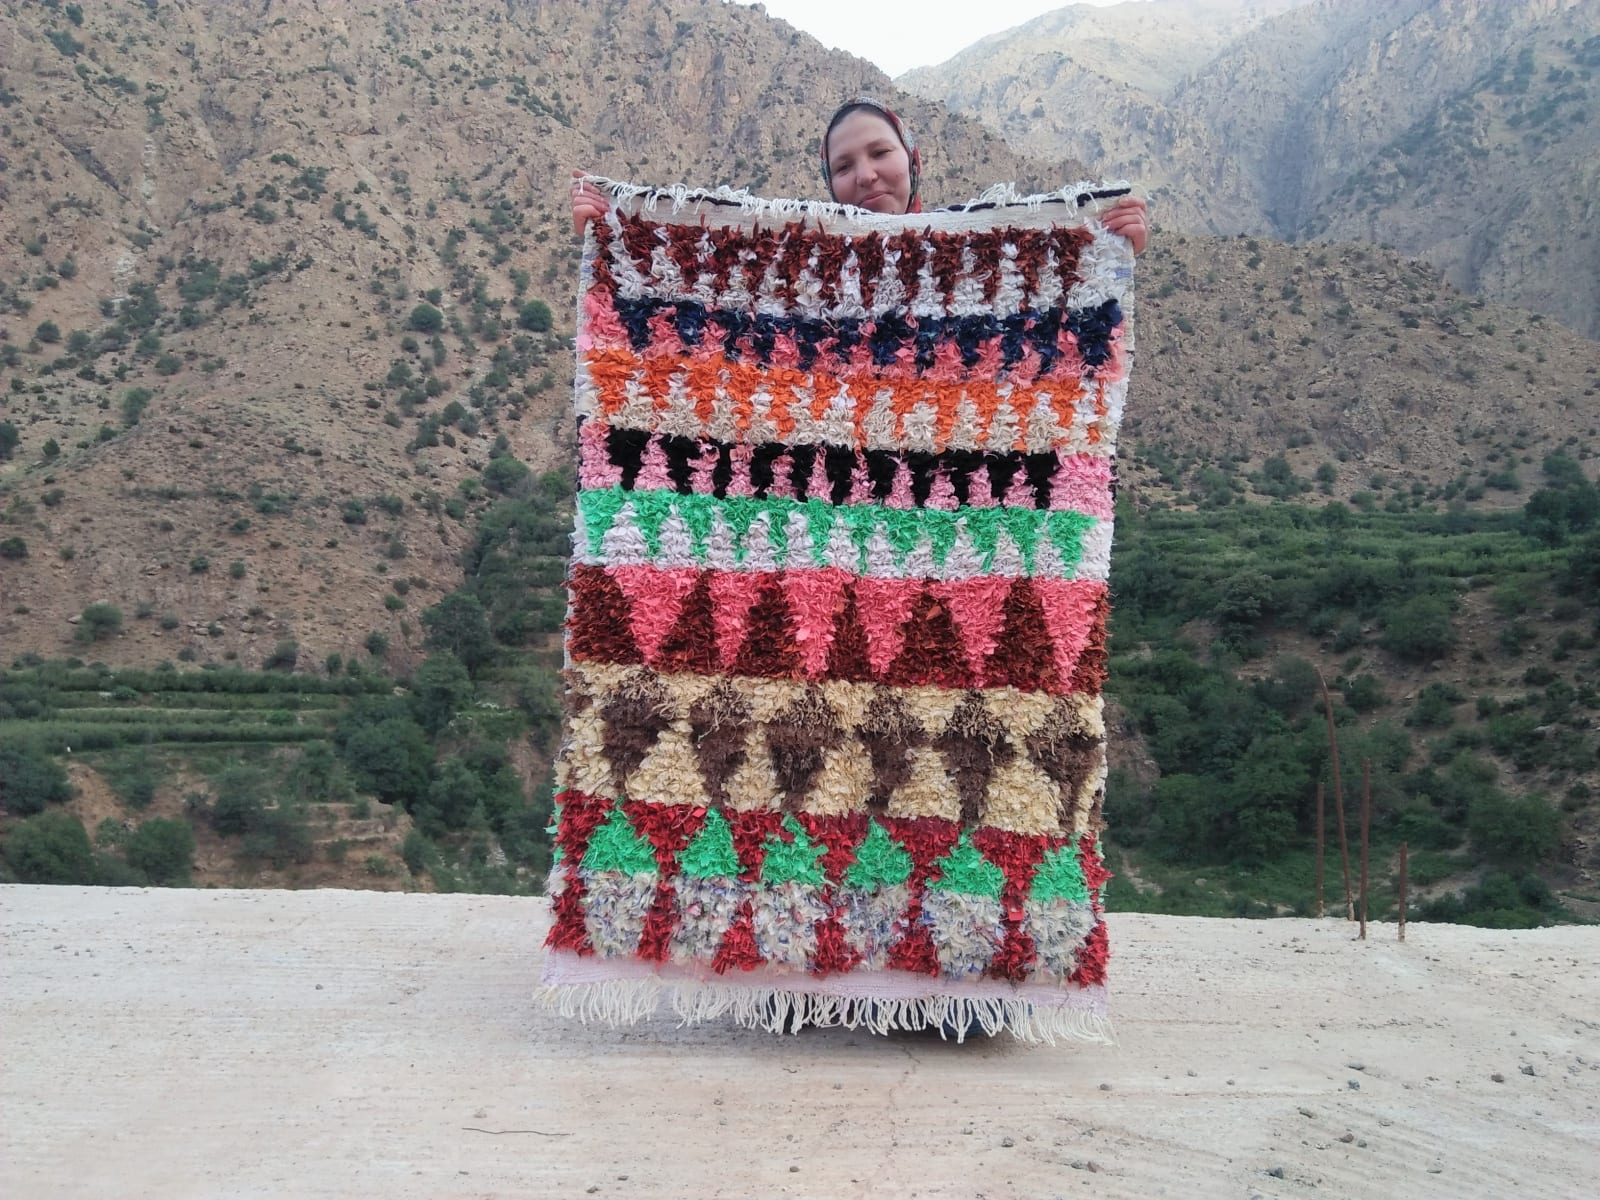 Pile knot Warp and Cloth rags Colored Morocco